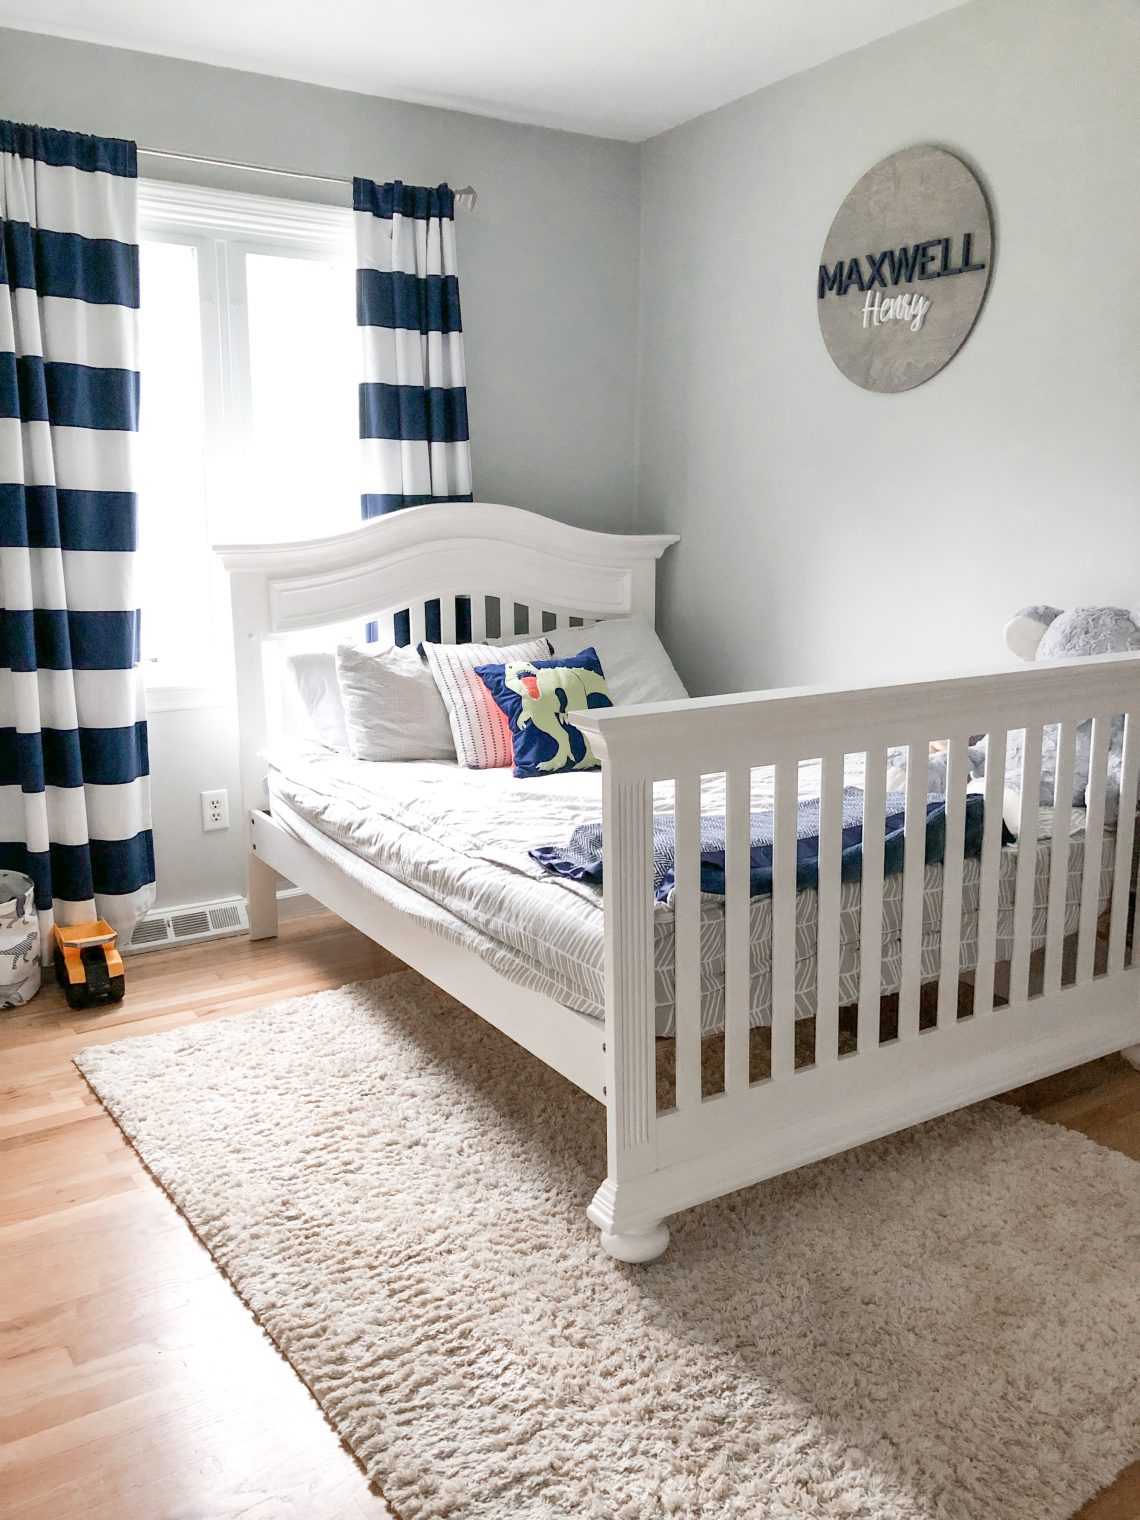 Big Boy Room Reveal - Beddy's Bedding